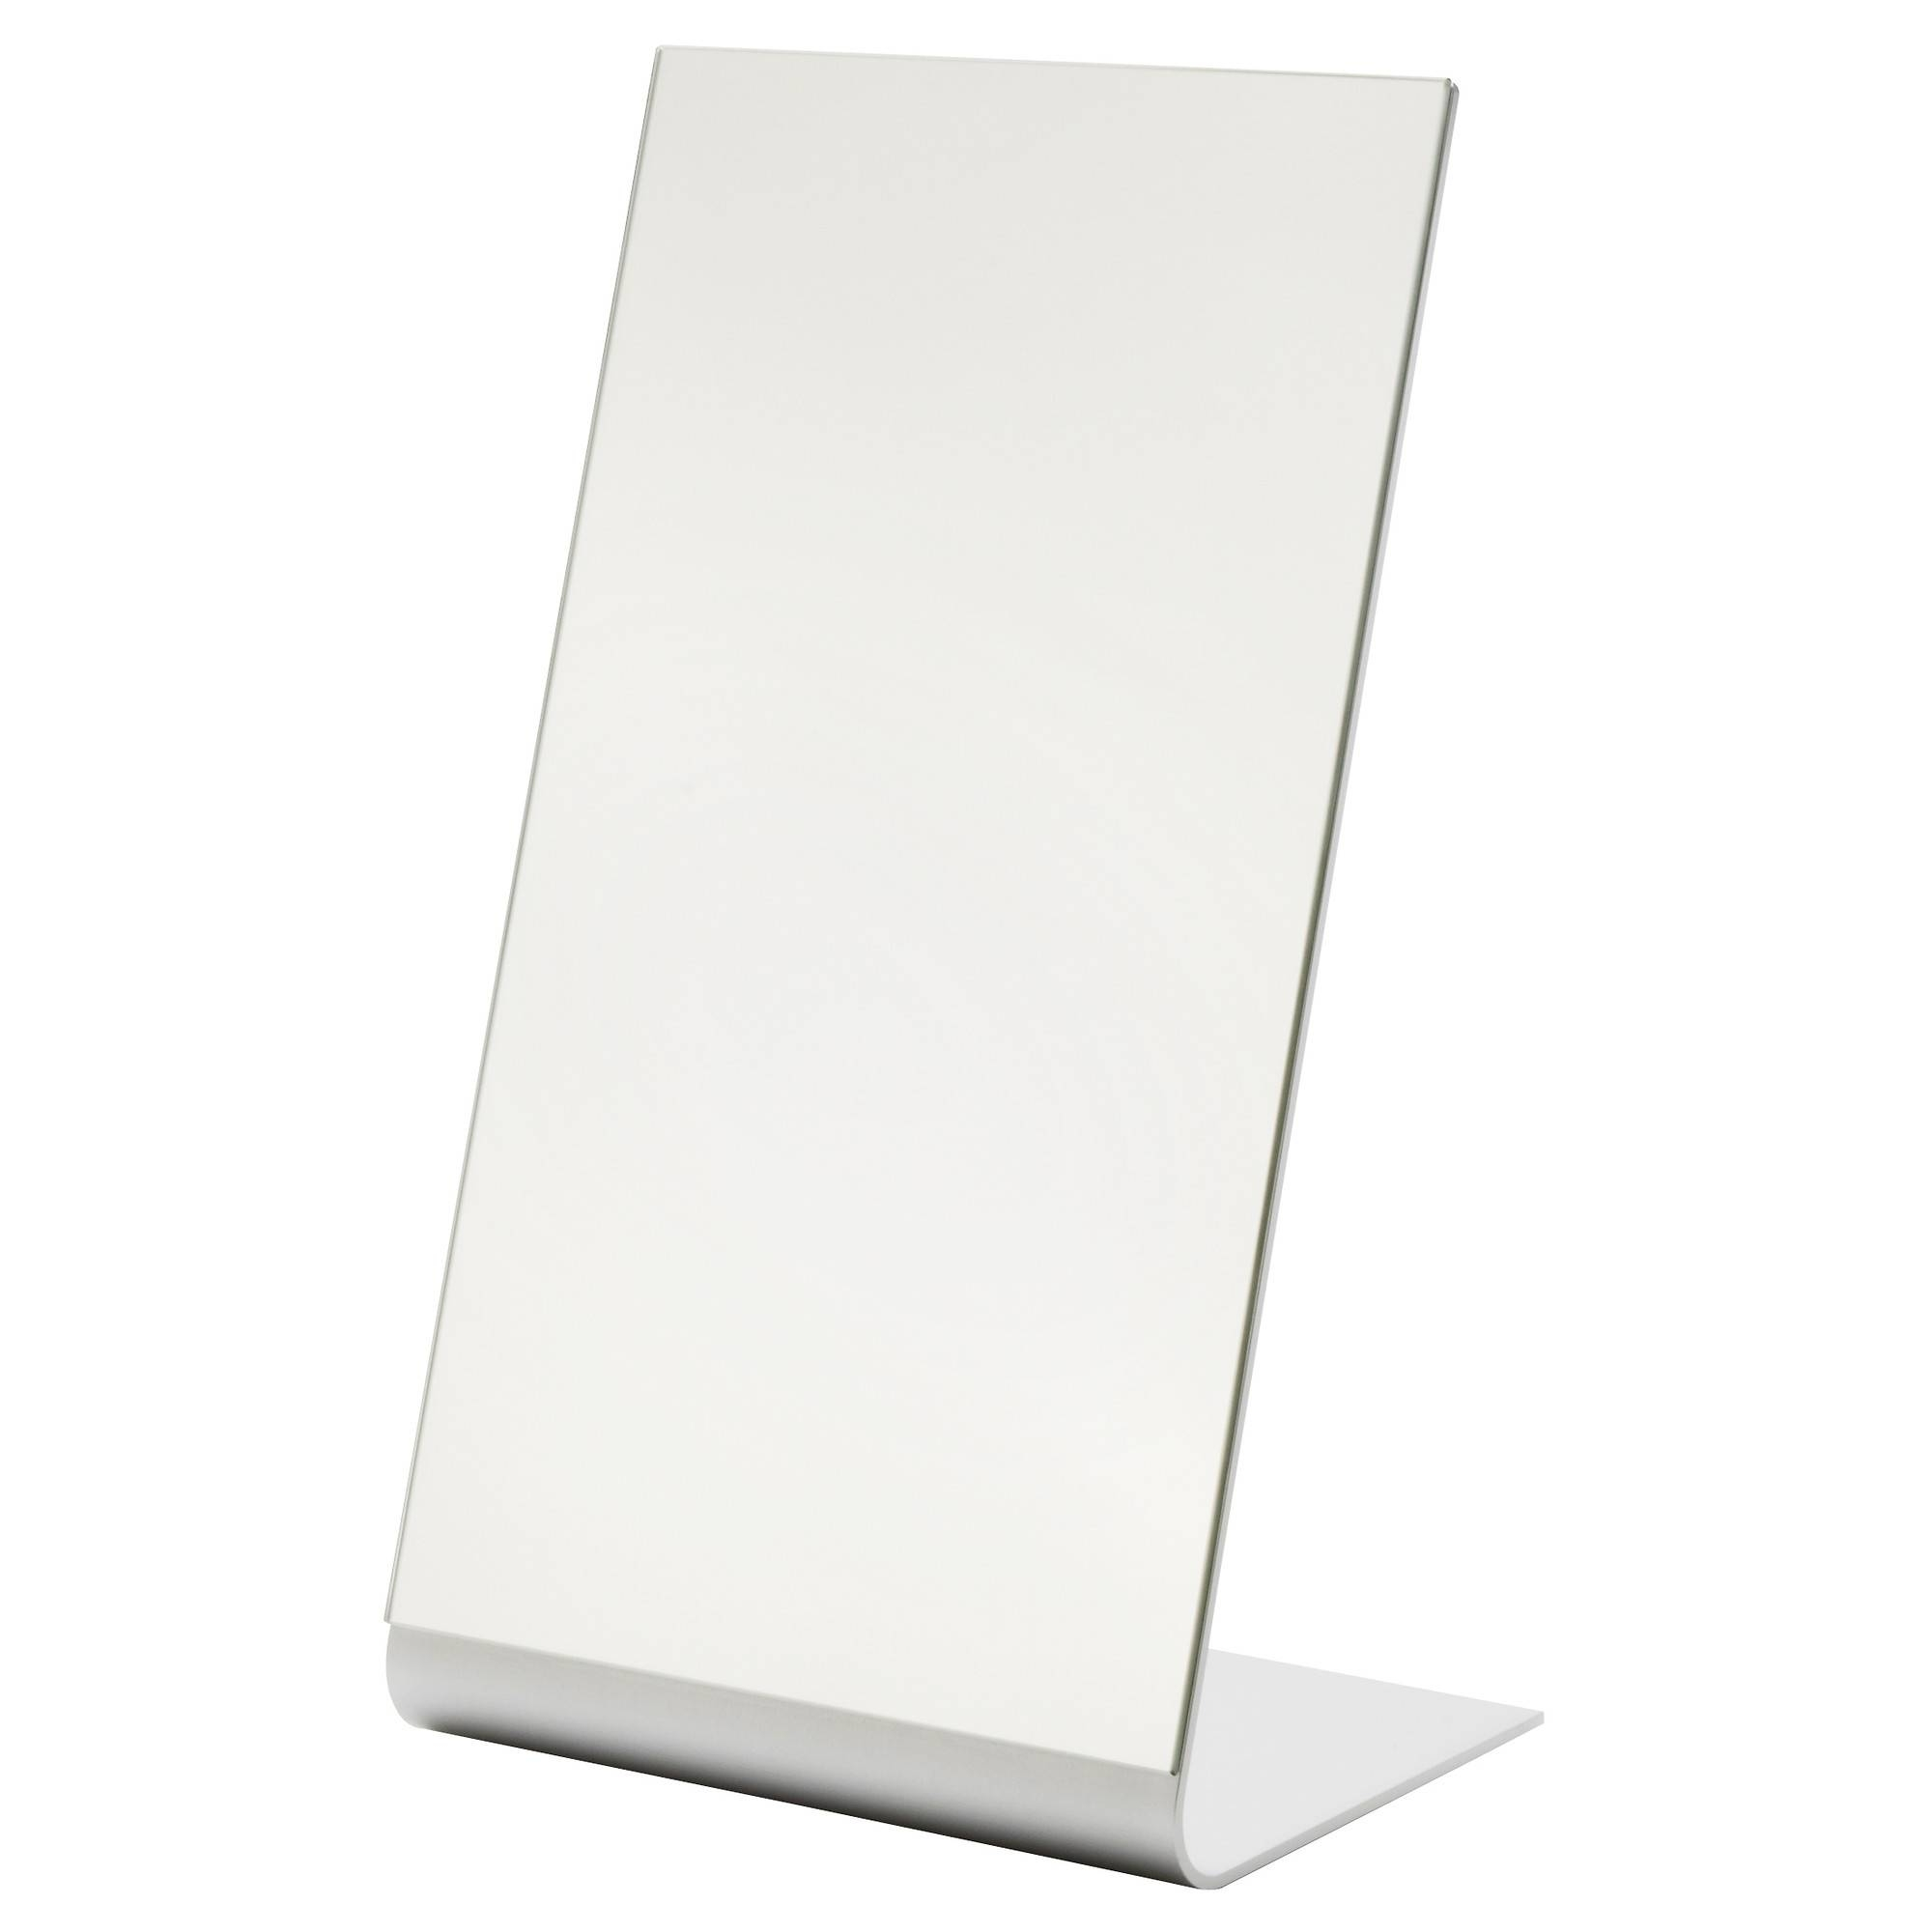 Mirrors - Free Standing Mirrors - Ikea within Free Stand Mirrors (Image 11 of 15)